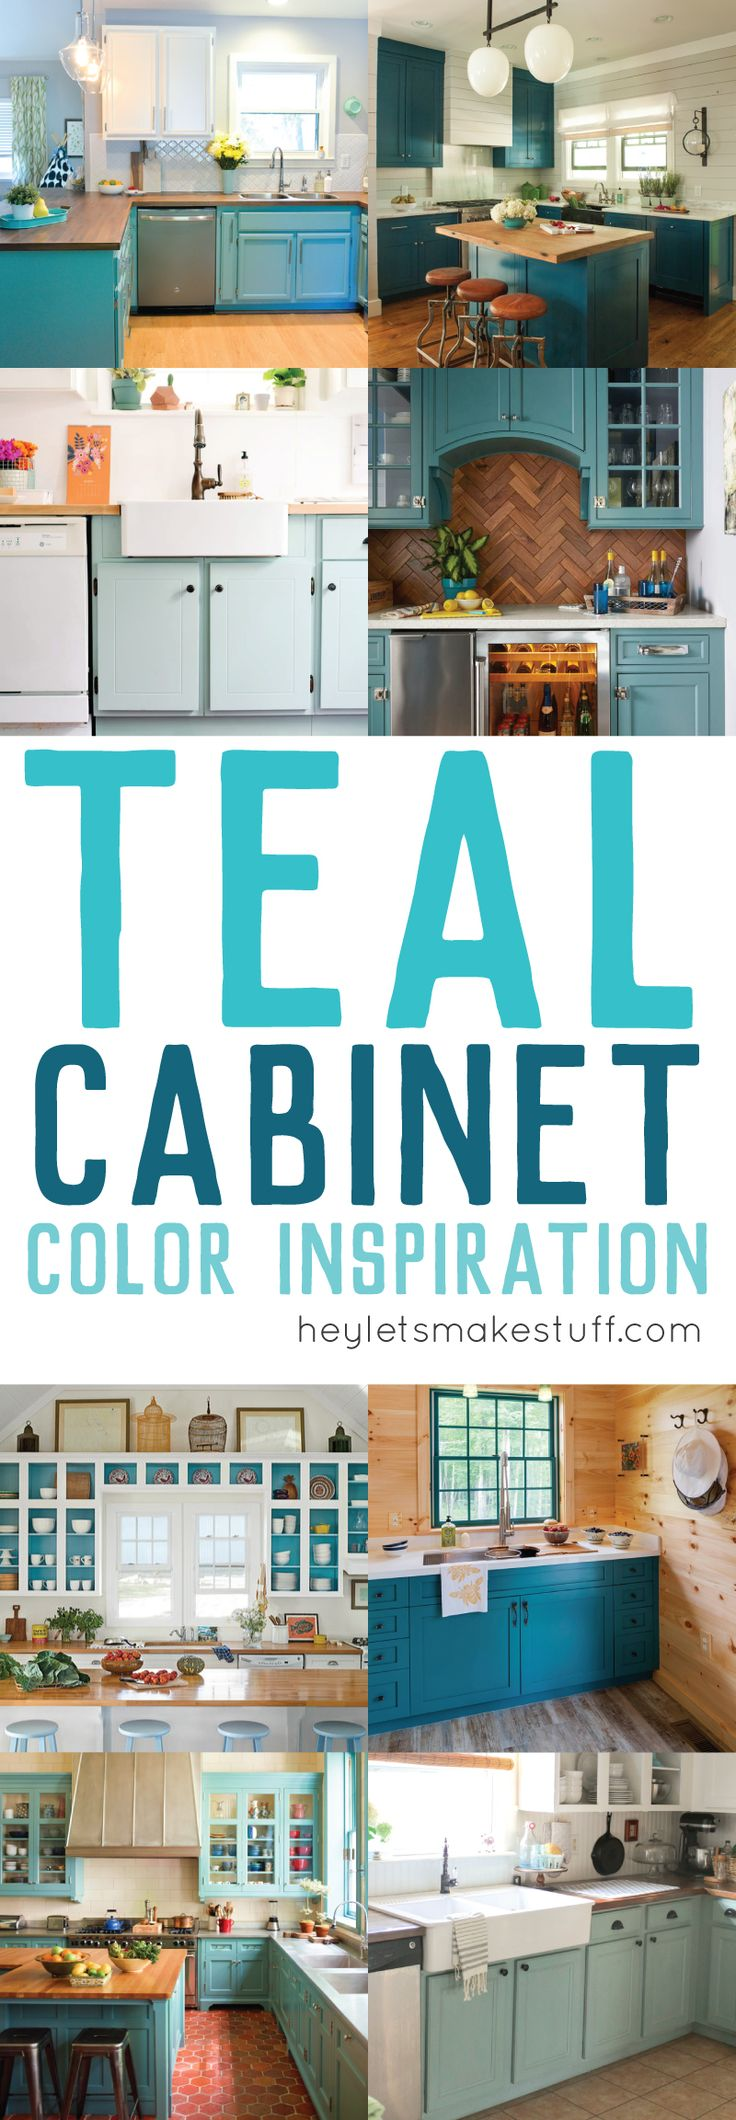 Take A Look At These Gorgeous Teal Kitchens. Painting Your Cabinets A Fun  Shade Of Part 84